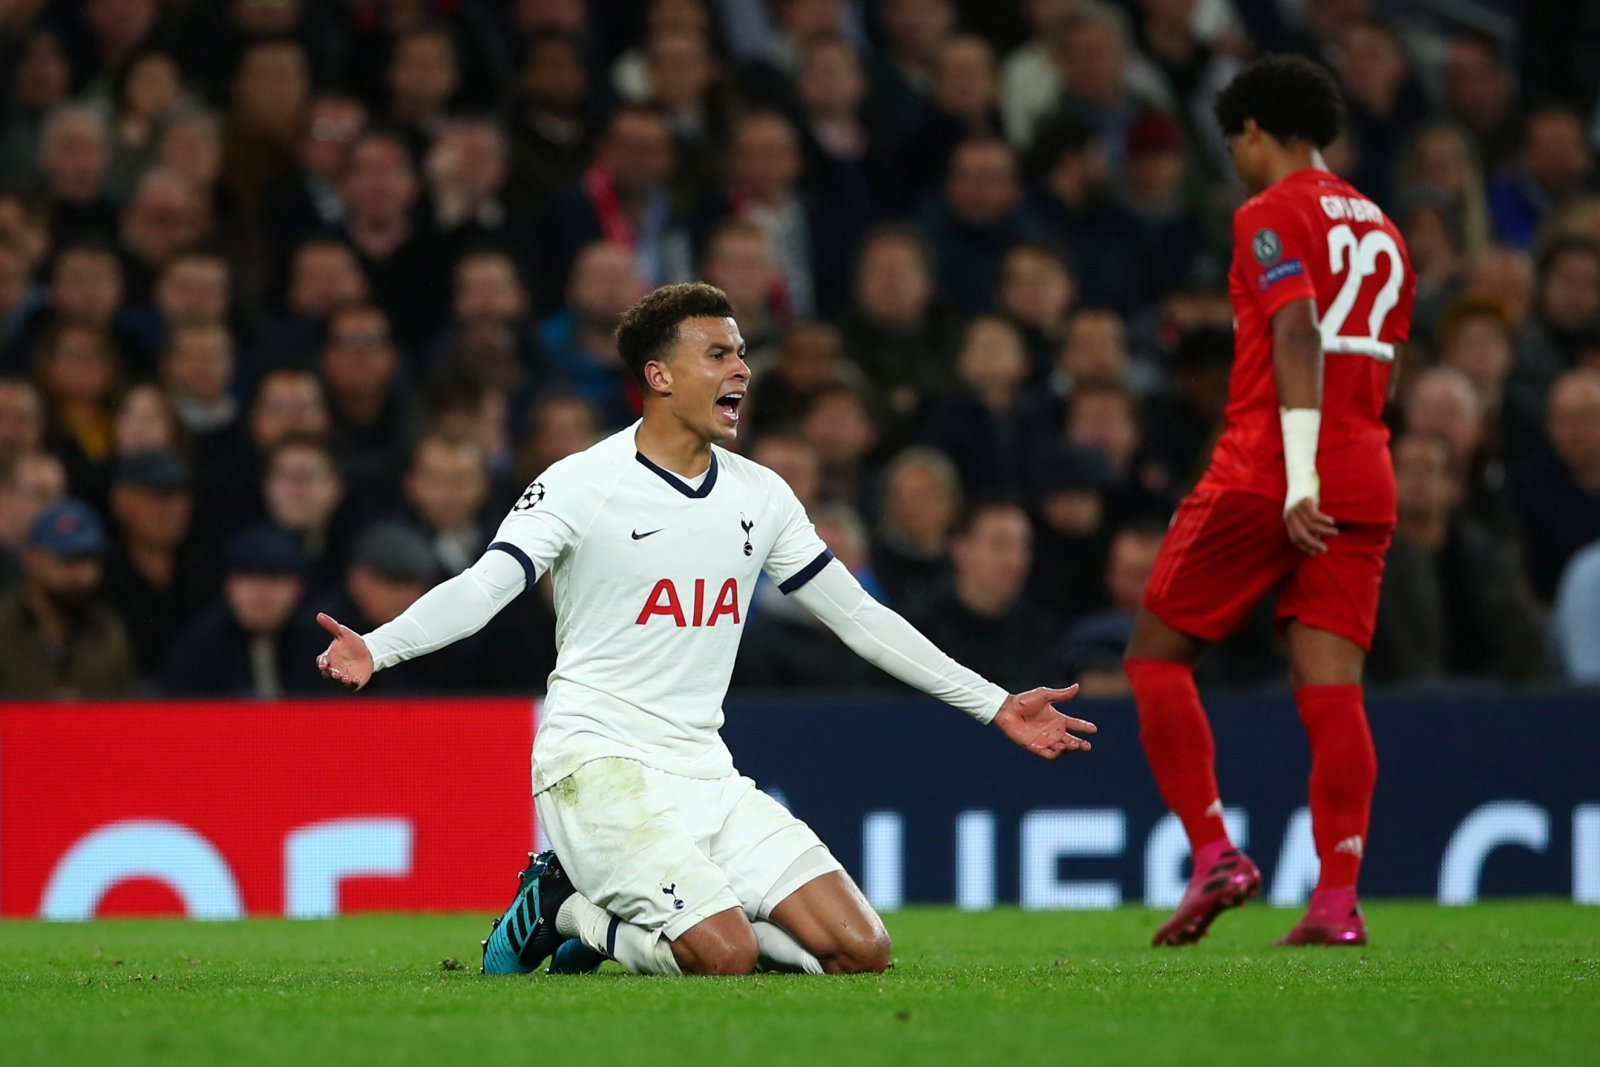 Tottenham Hotspur: Fans were in full support of Dele Alli after the final whistle